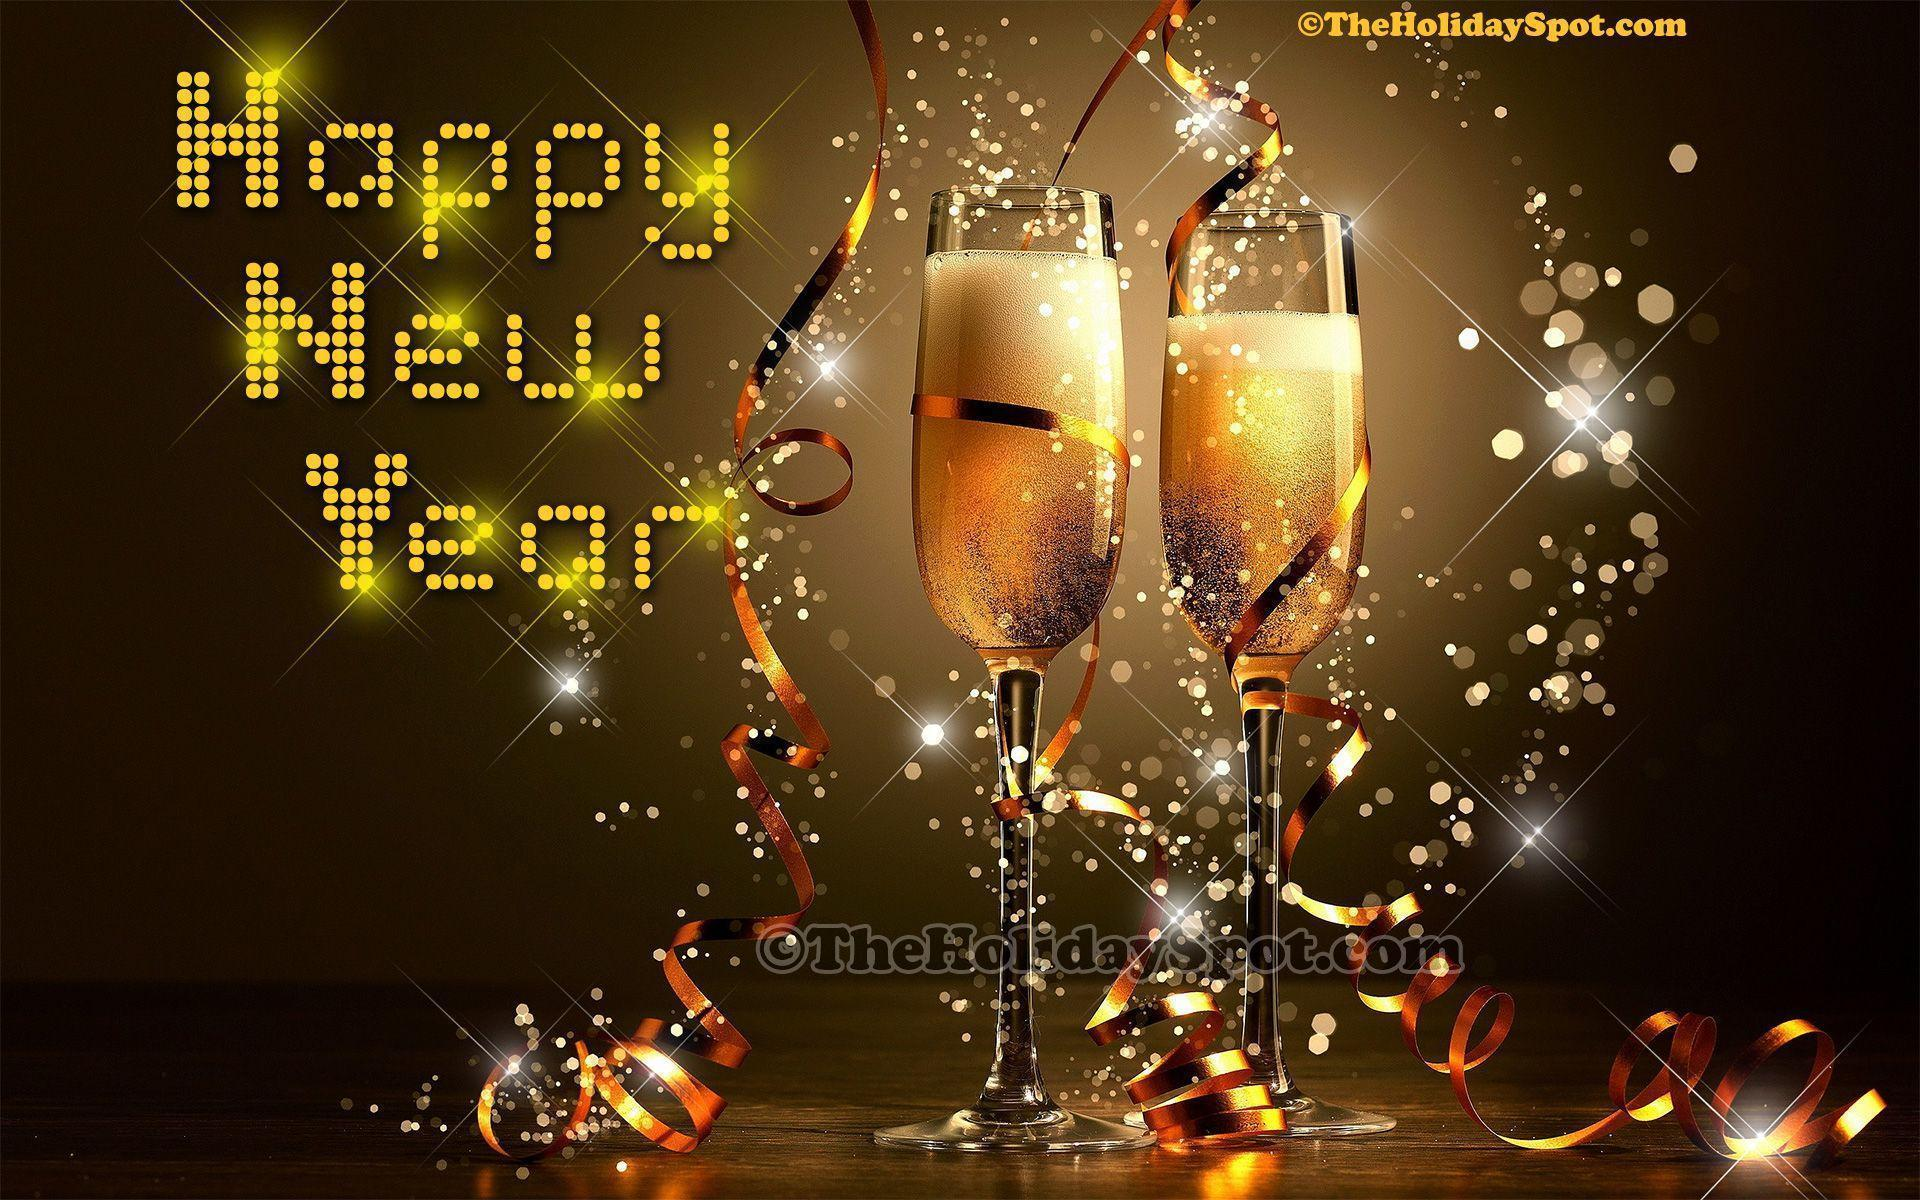 New Years Eve 2016 Wallpapers Free - Wallpaper Cave